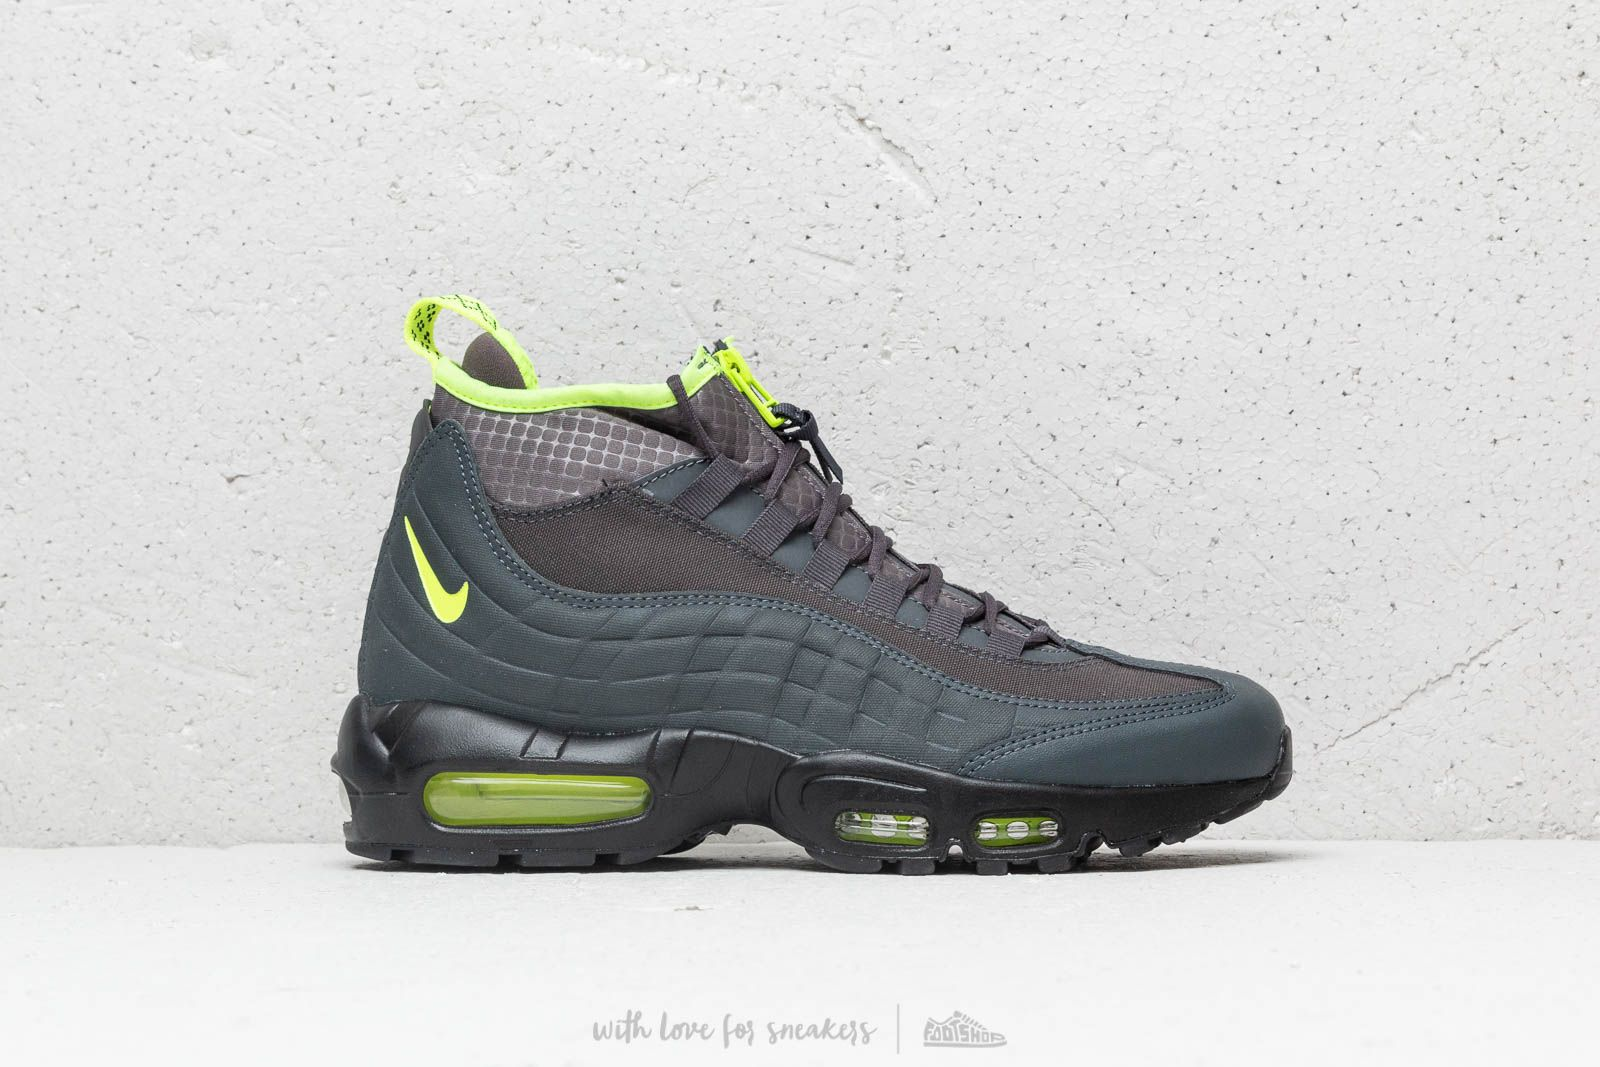 faafda4a87fb Nike Air Max 95 Sneakerboot Anthracite  Volt-Dark Frey at a great price 124